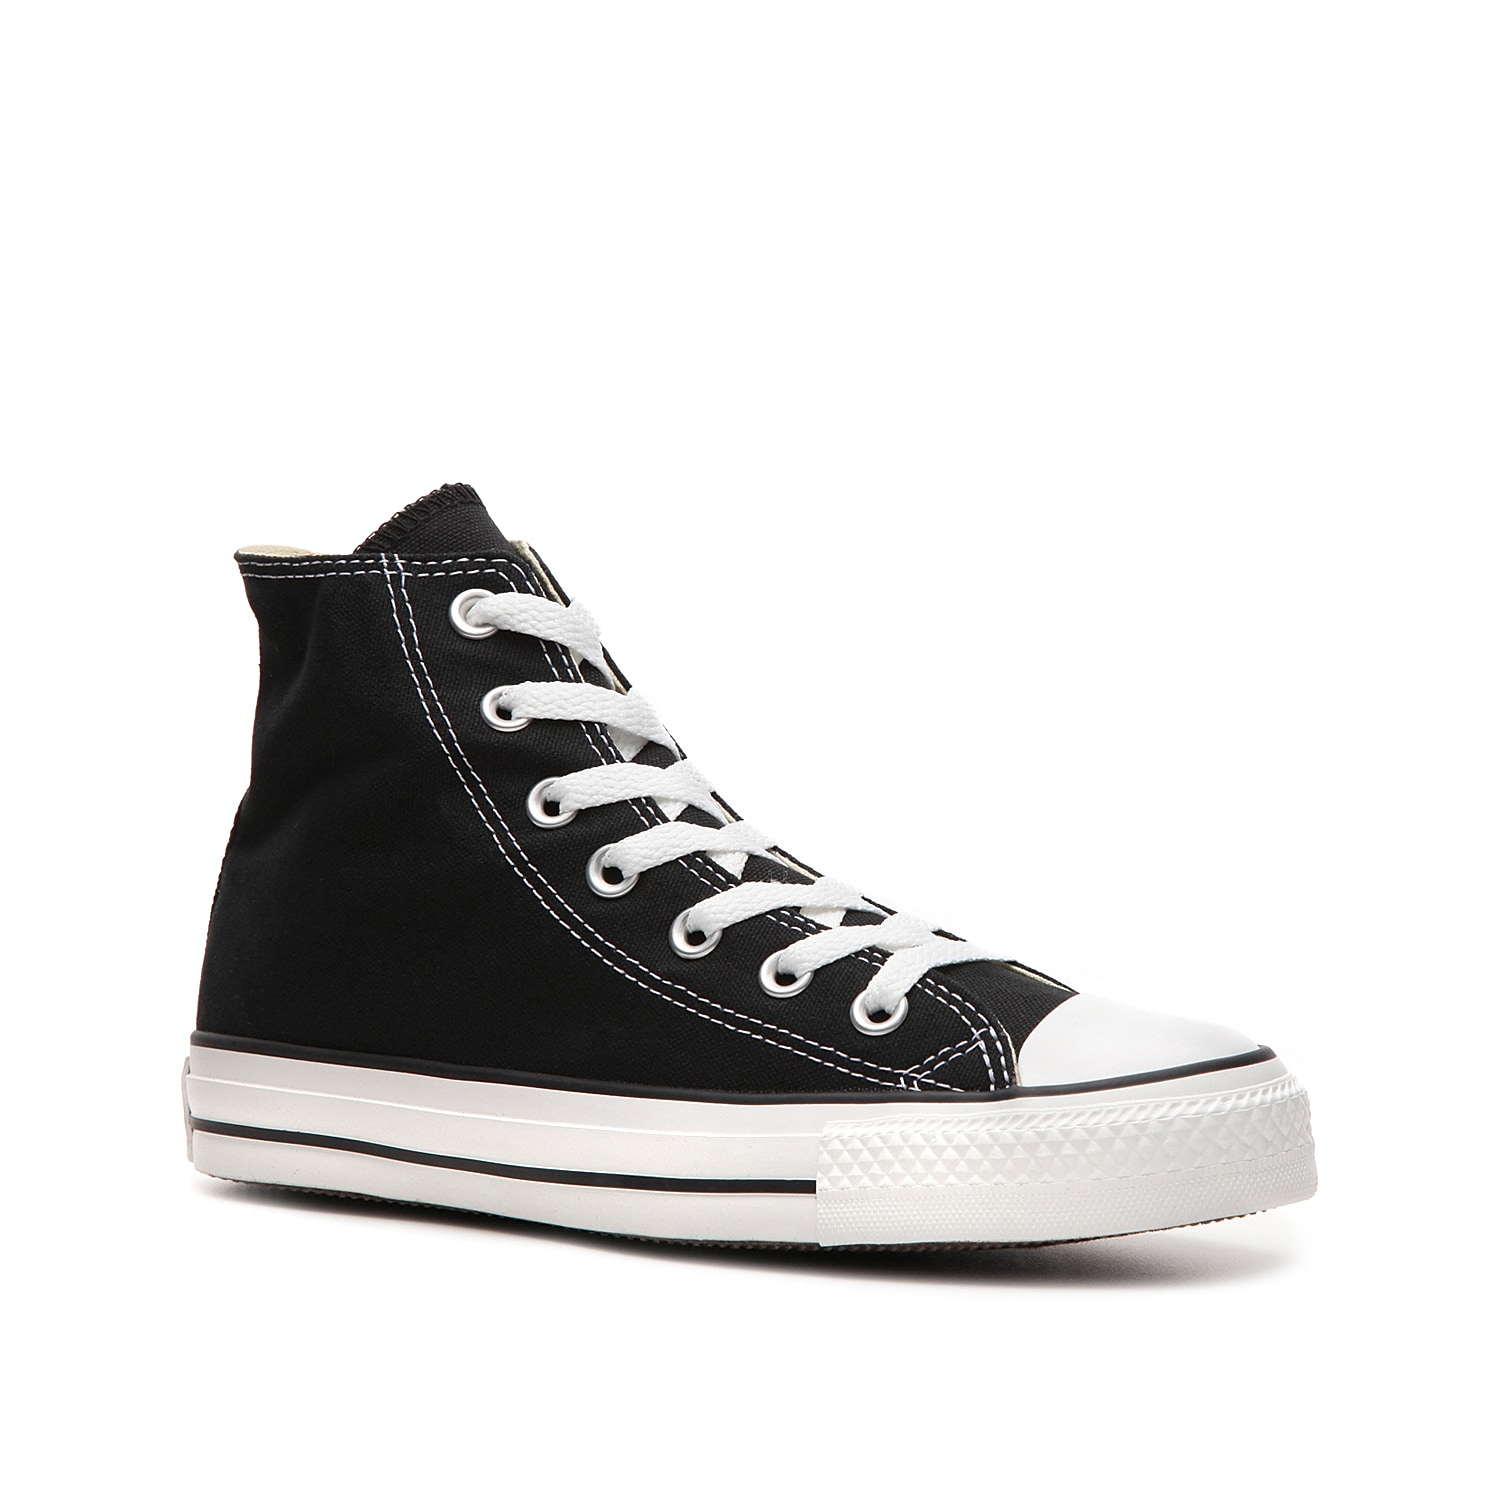 The iconic styling of the women\\\'s high-top Converse Chuck Taylor All Star sneaker will never go out of style. Incorporate this classic shoe into your casual wardrobe and make it your own.